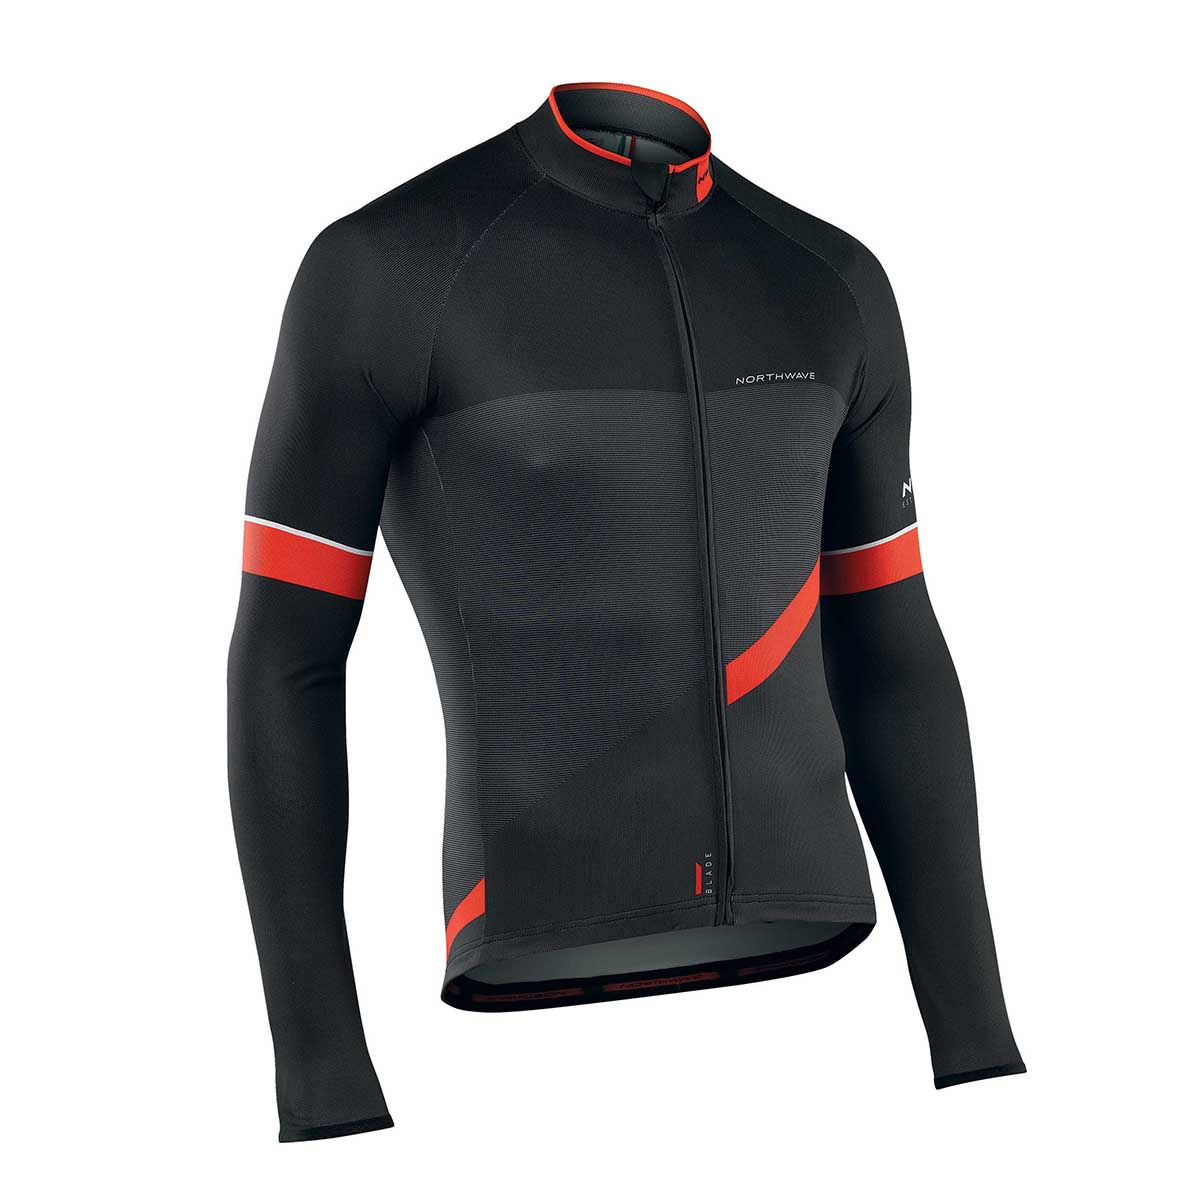 Maillot Northwave Blade 2 (manches longues) - M Noir/Rouge